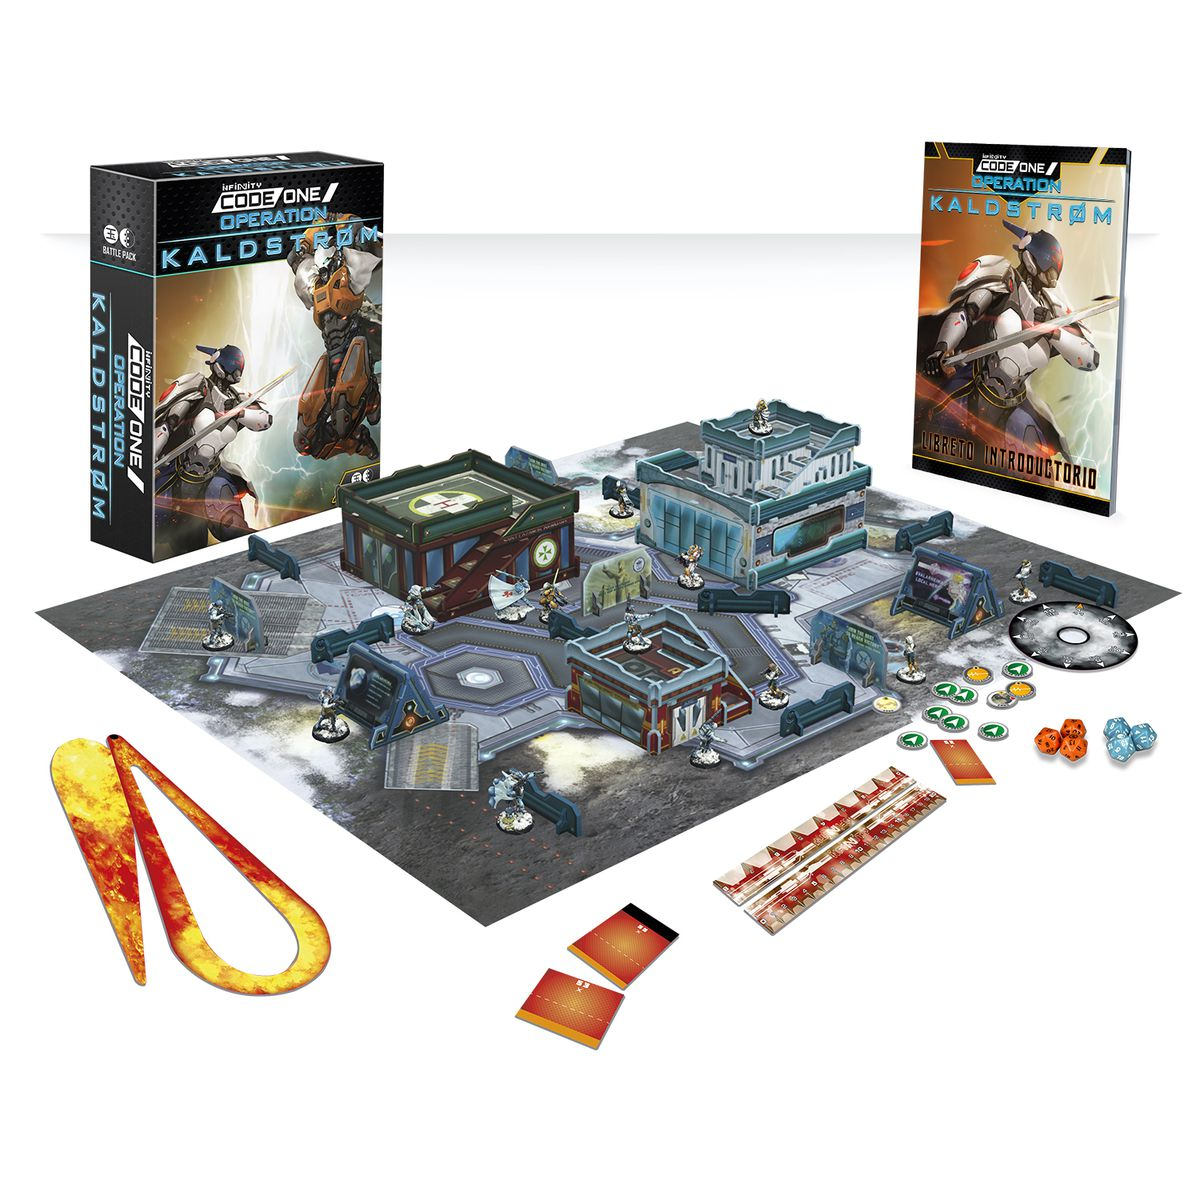 A render showing a play mat, miniatures, dice, and more.